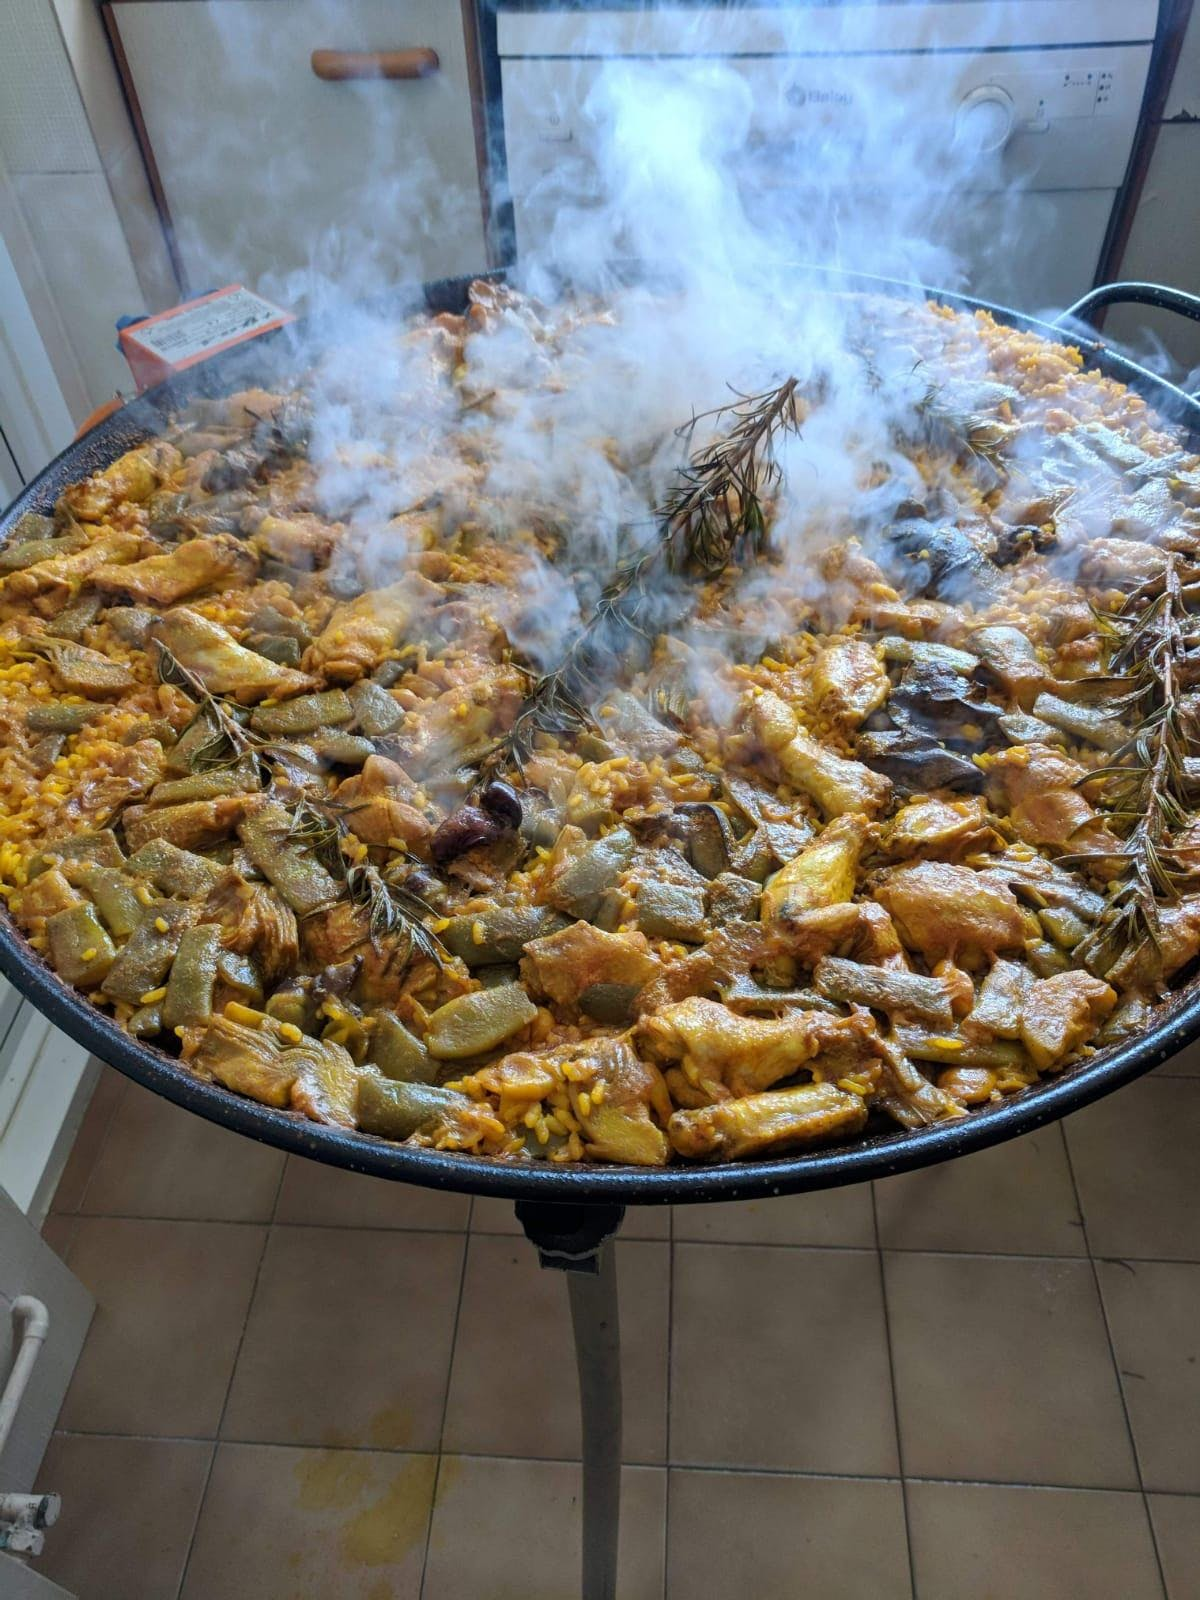 Valencian Paella: A tradition of sharing